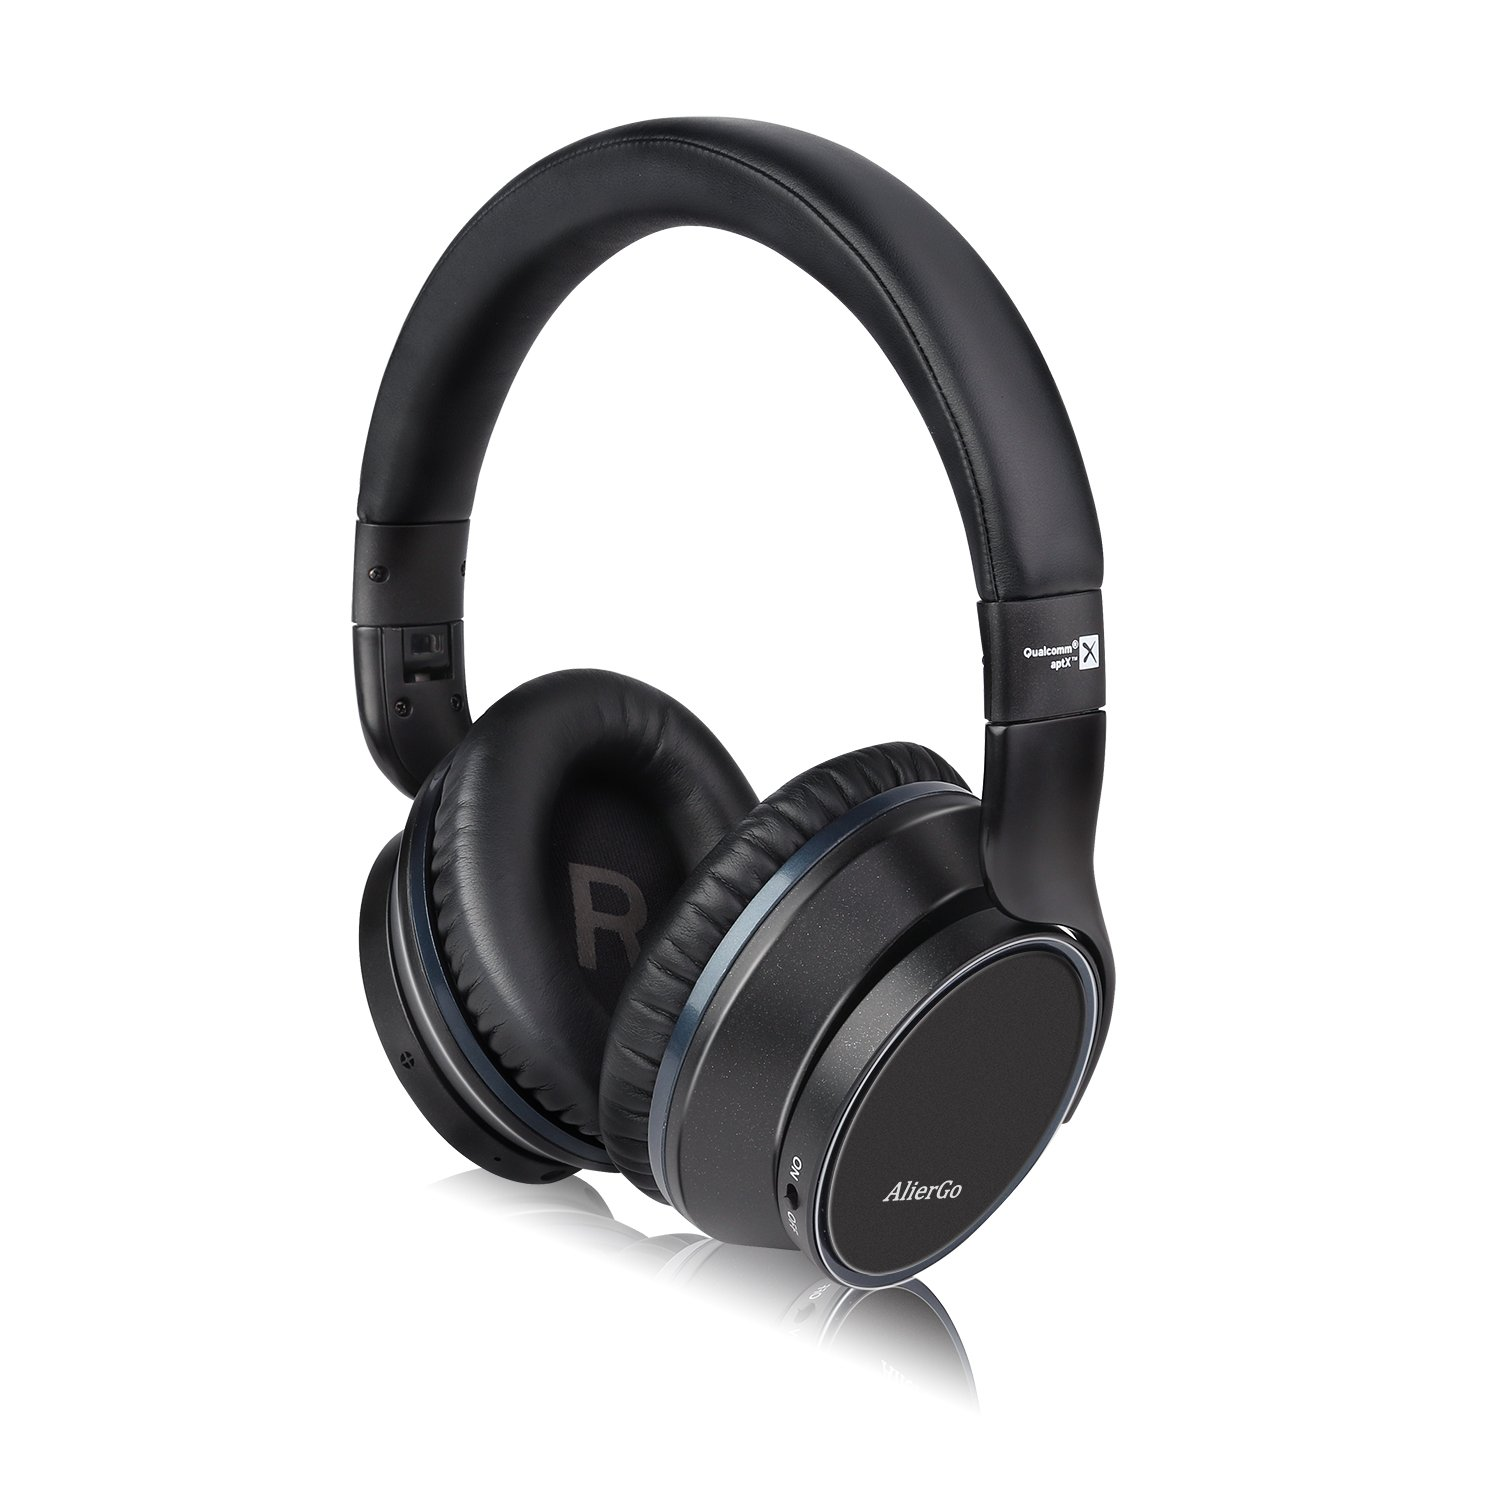 Auriculares Aliergo Soundon Anc Inalambrico S Activa Noise Cancelling(anc) Inalambrico Stereo Over-ear Headsets Con Aptx